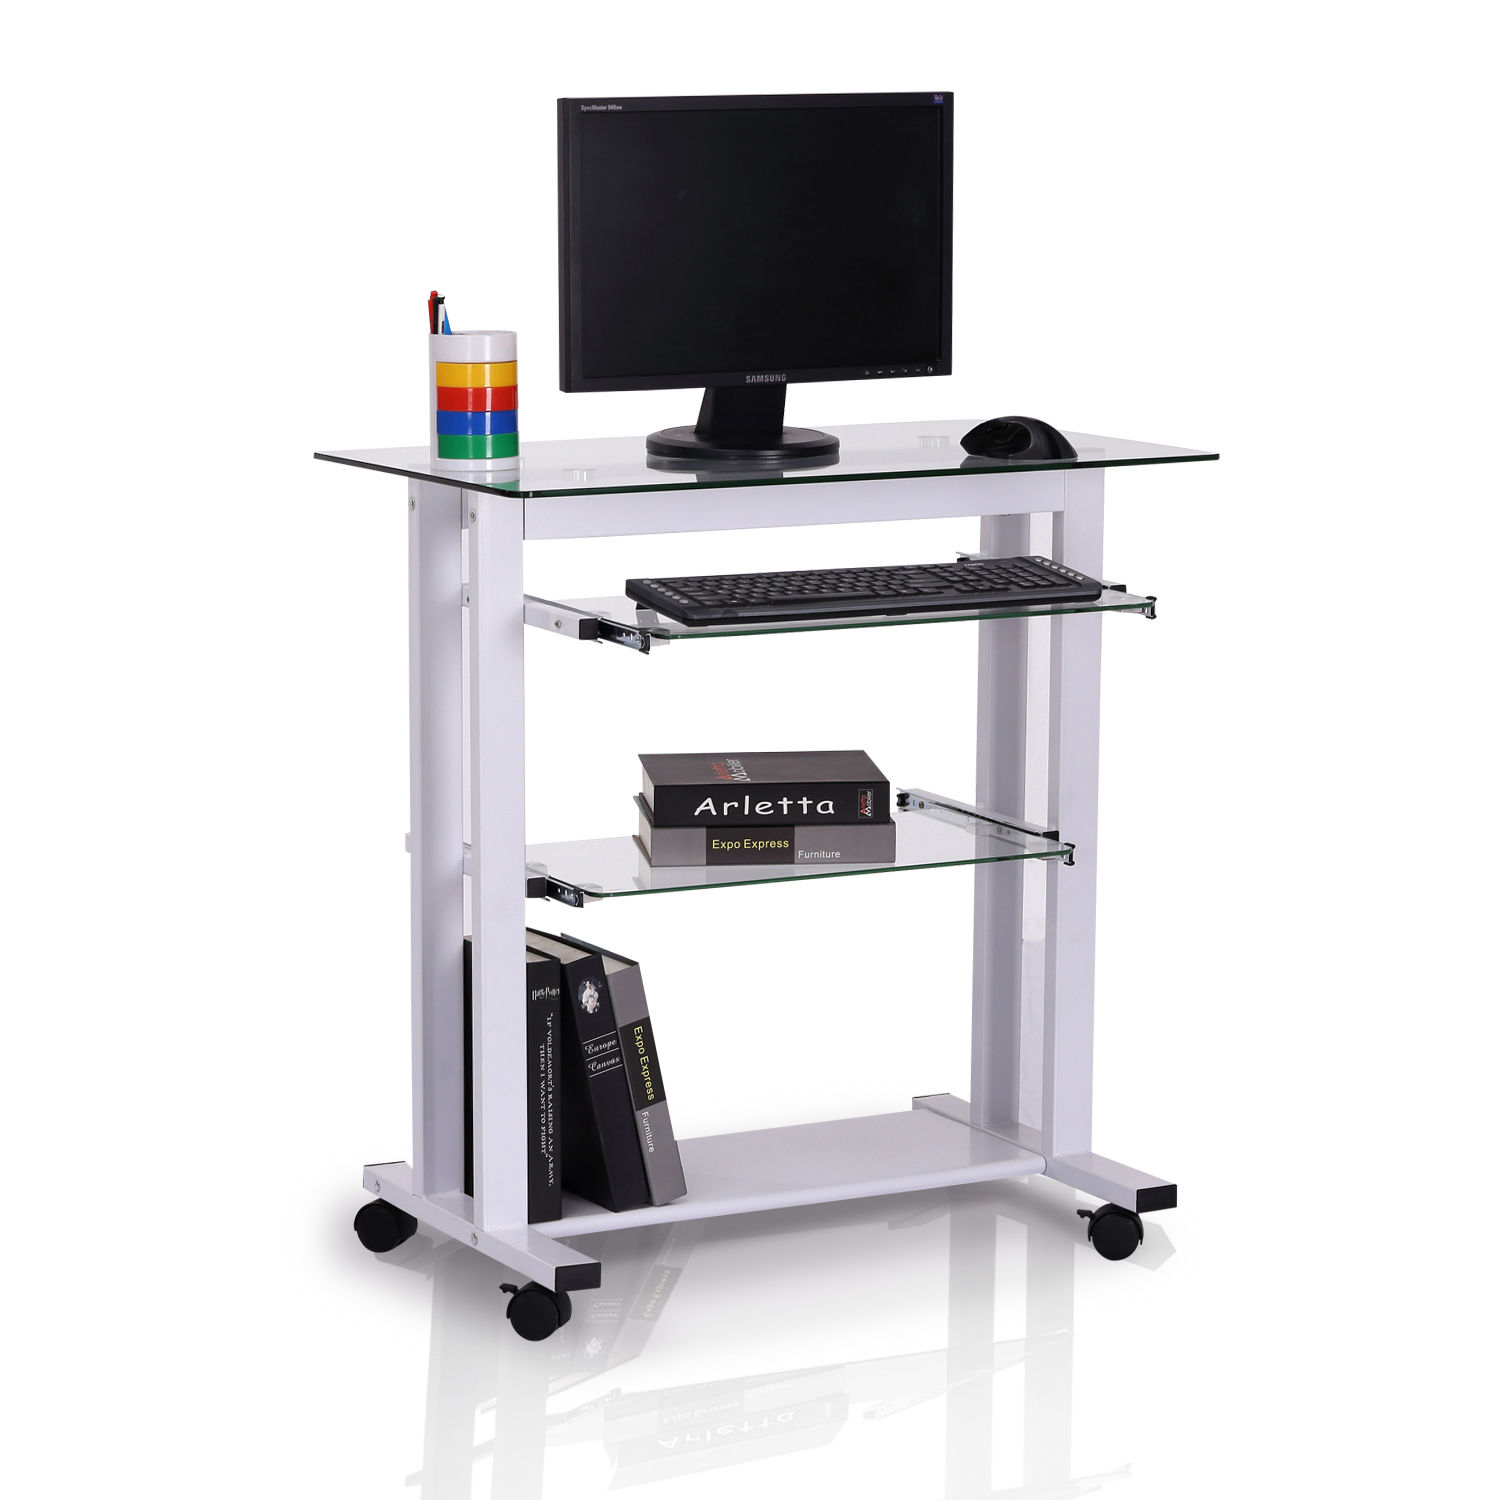 GHP White Computer Table Stand with Non-Transparent Tempered Glass Top & Wheels